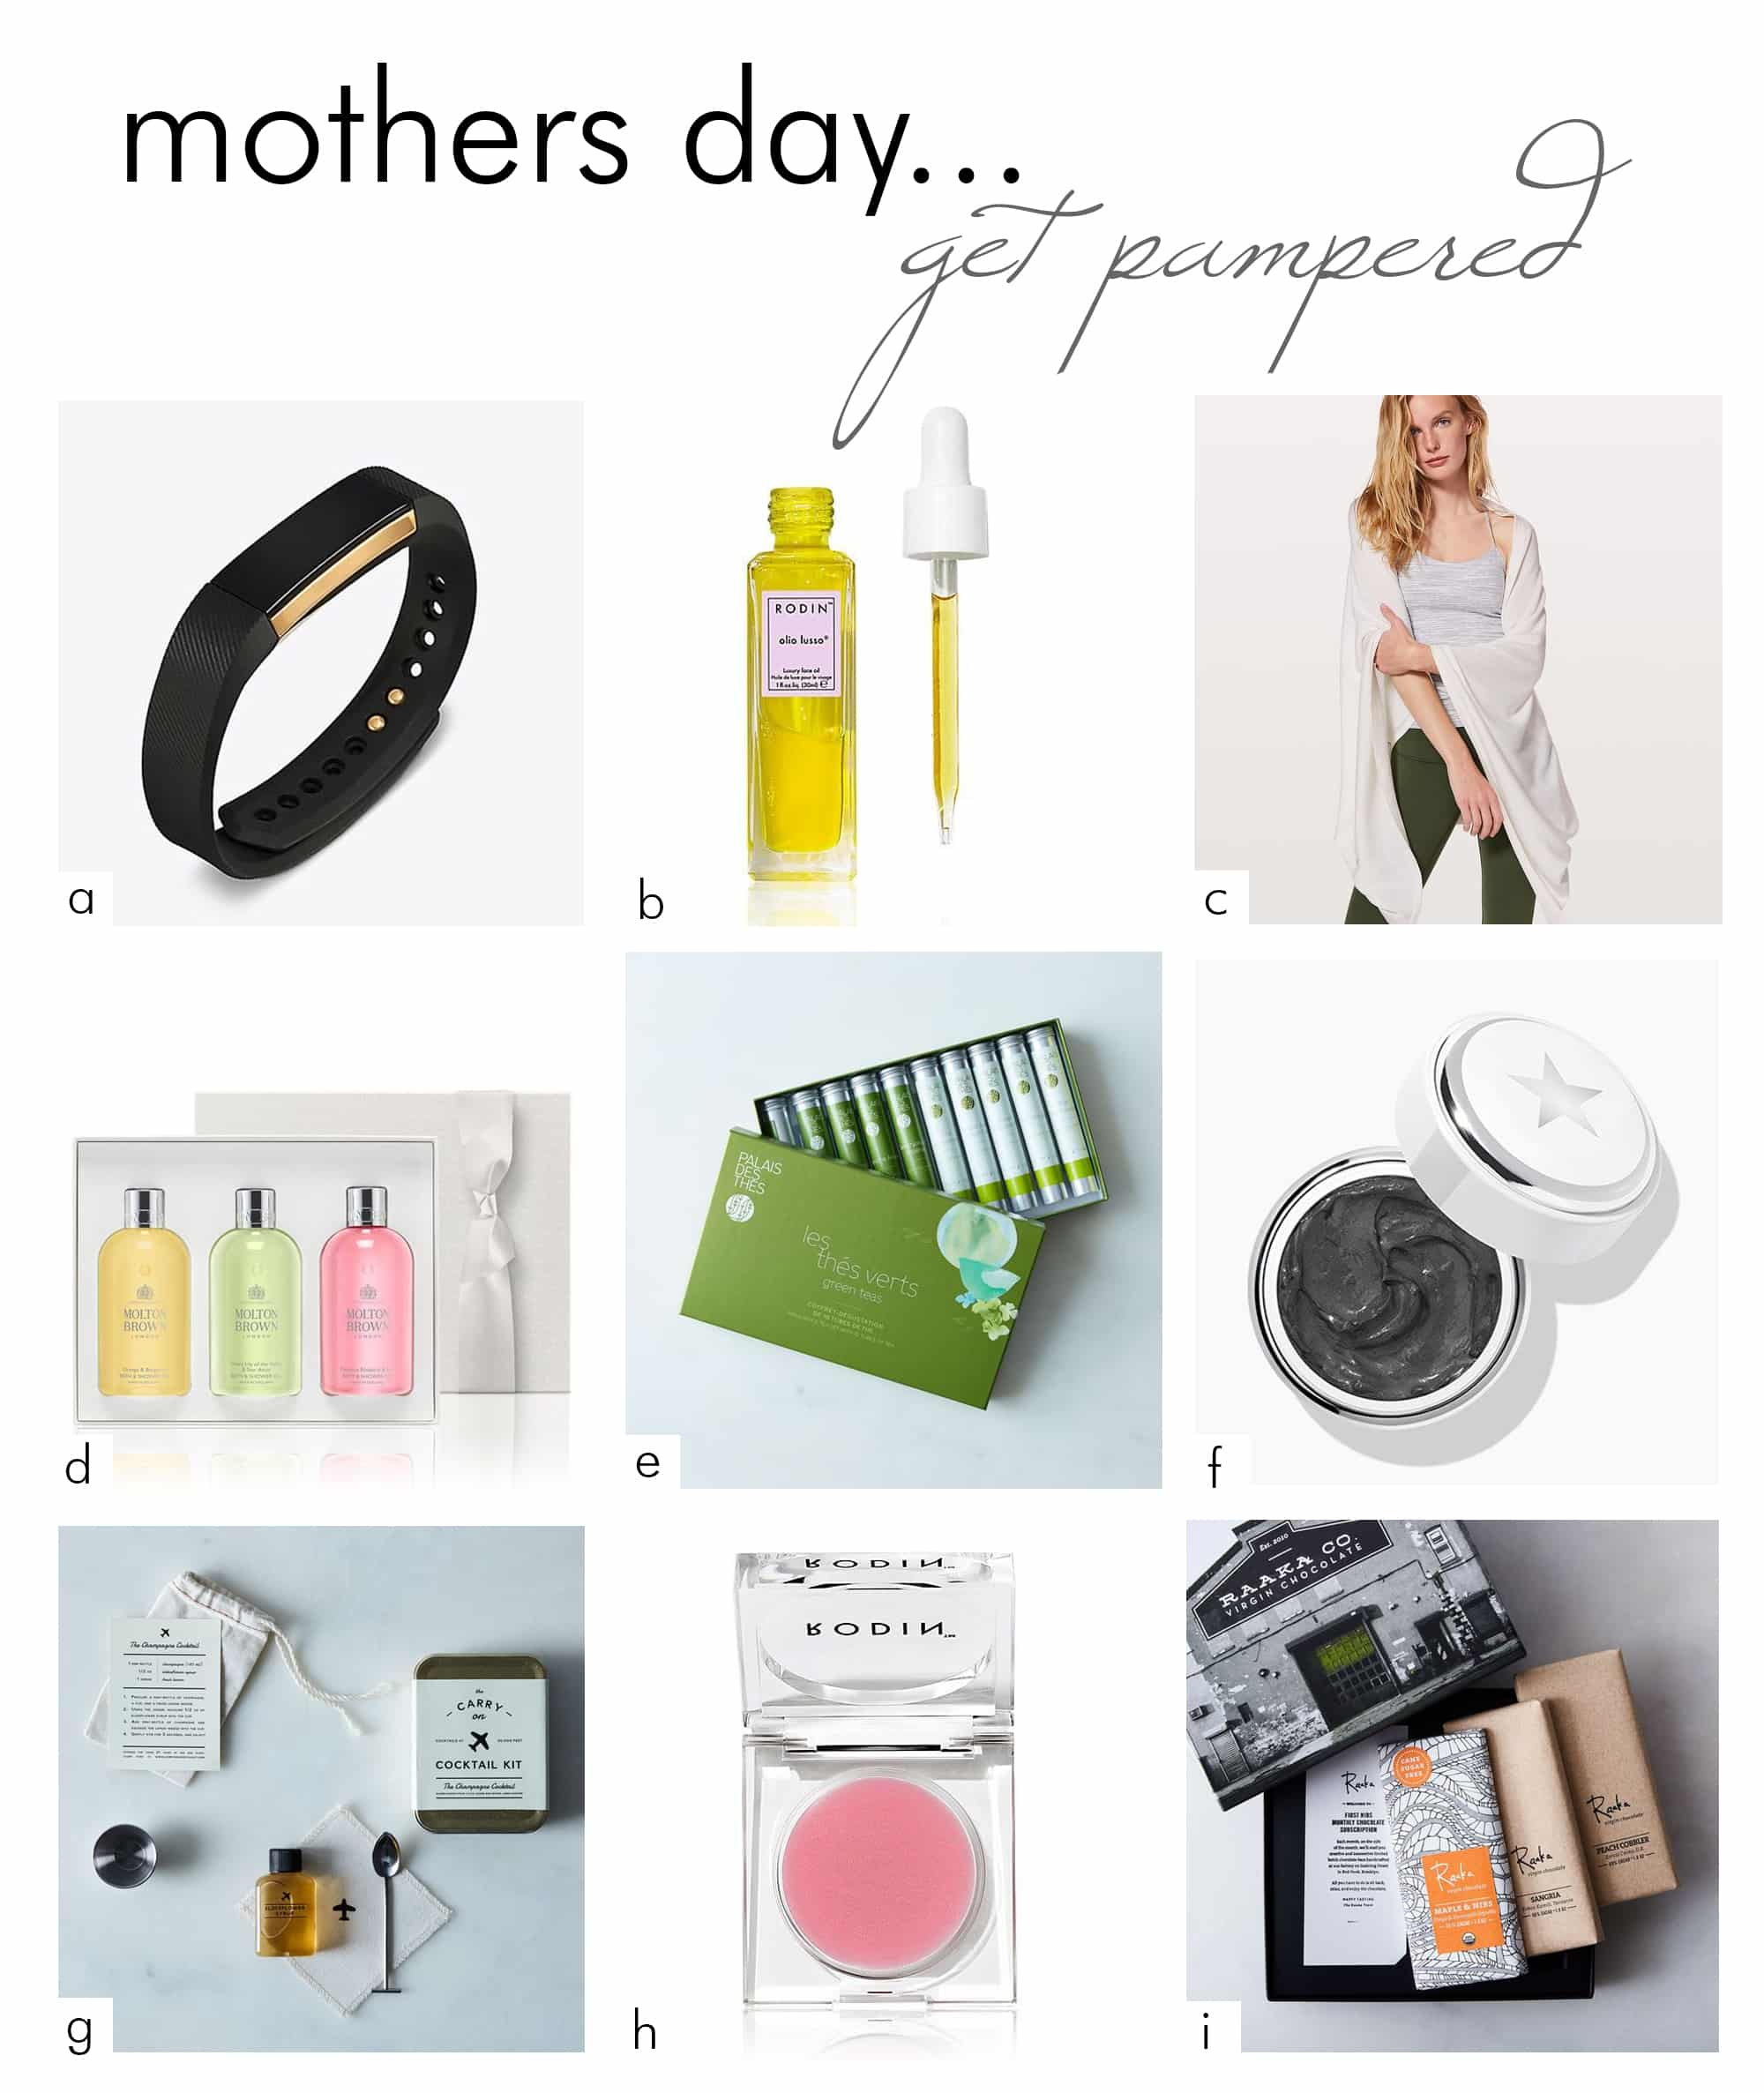 mothers day shopping gift guide - gifts to pamper mom - darci hether new york